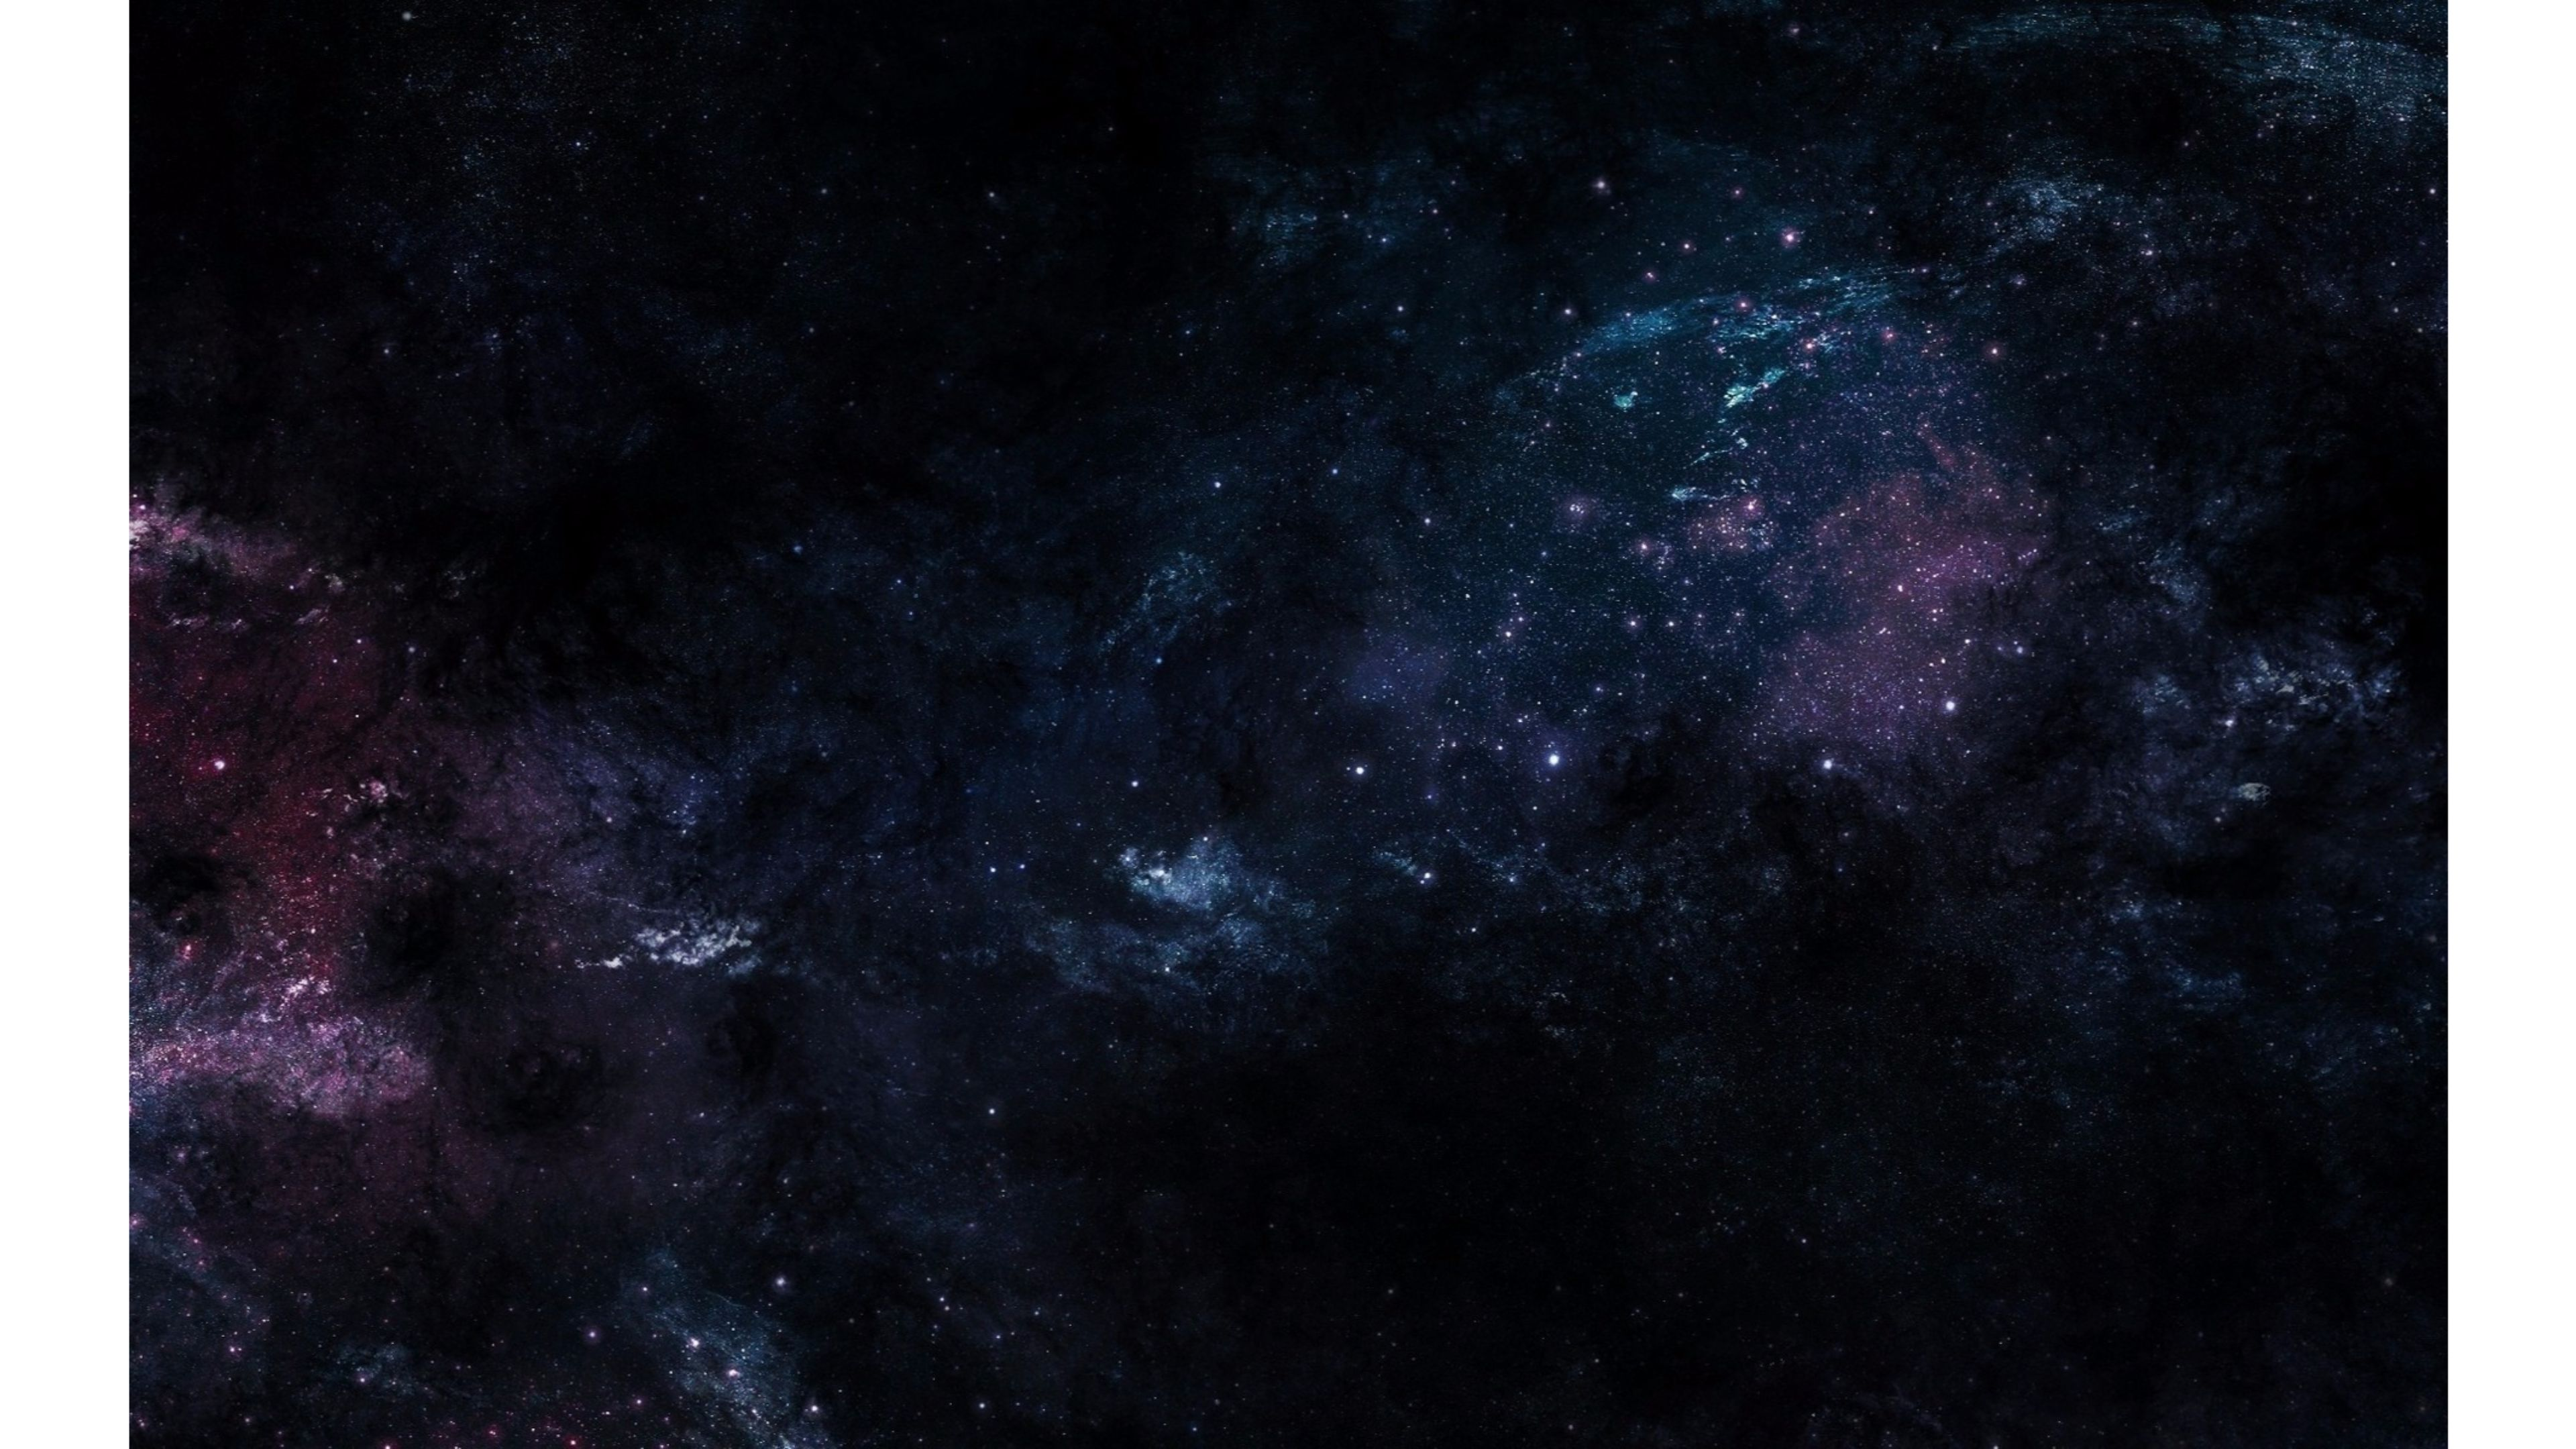 Dark Space 4K Wallpaper 4K Wallpaper 3840x2160